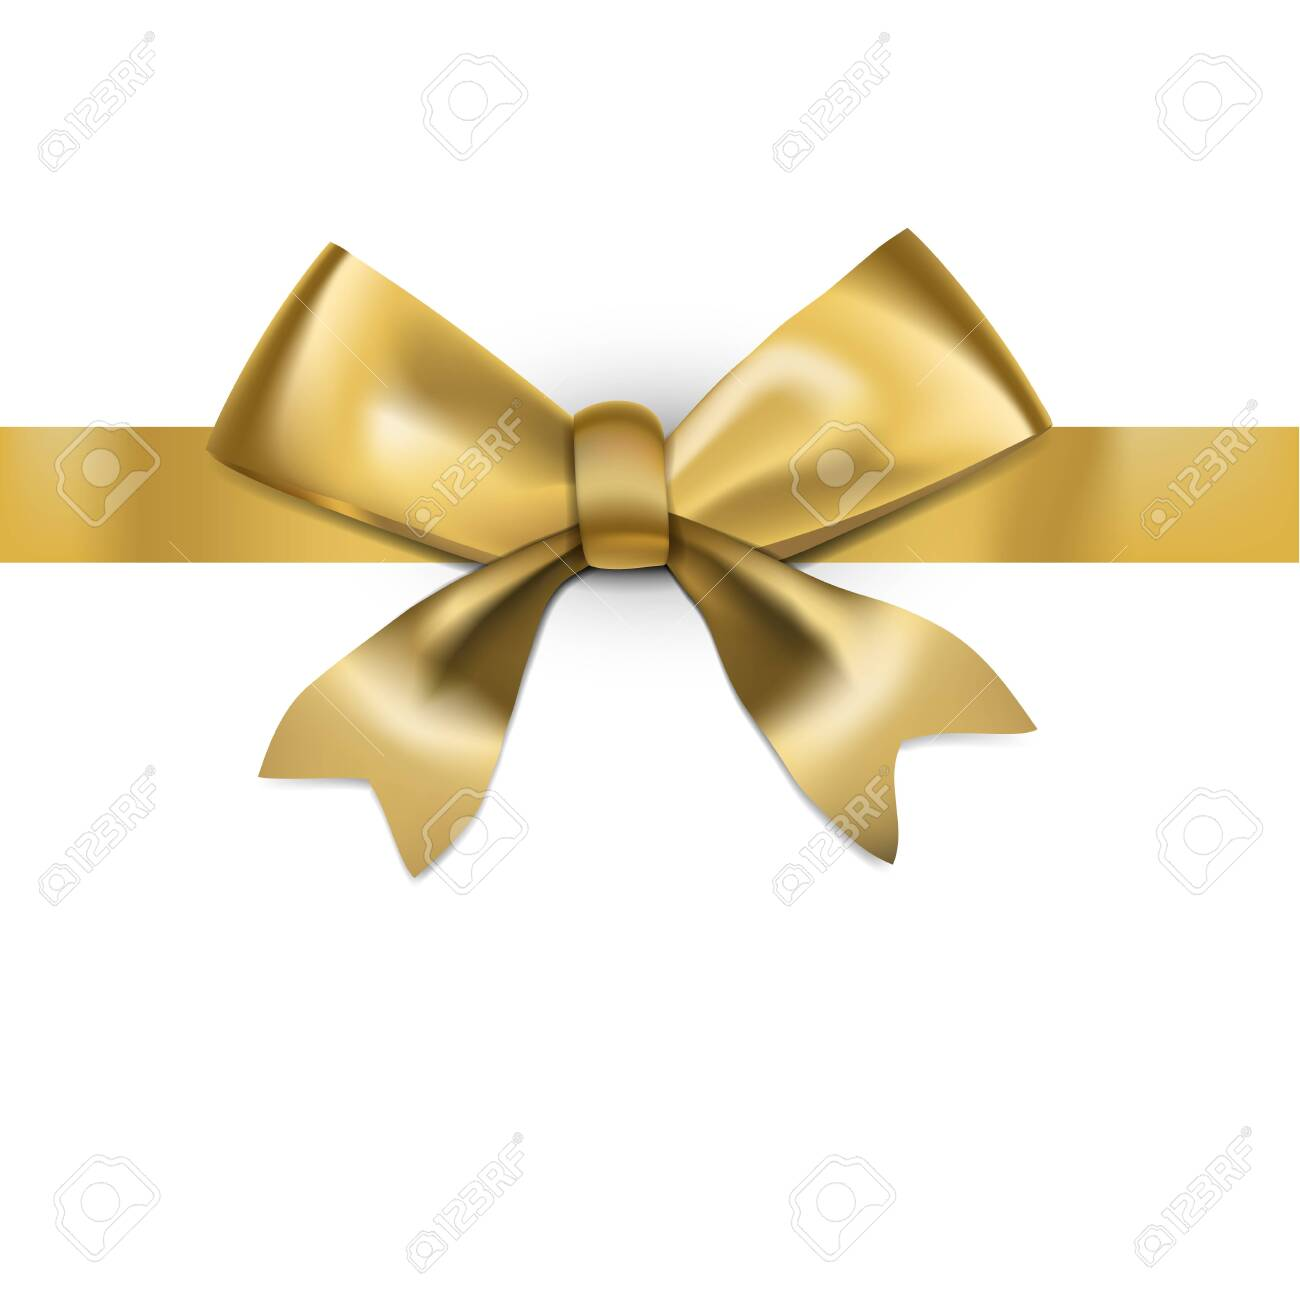 Decorative Golden Bow With Glossy Long Ribbon - 132033185